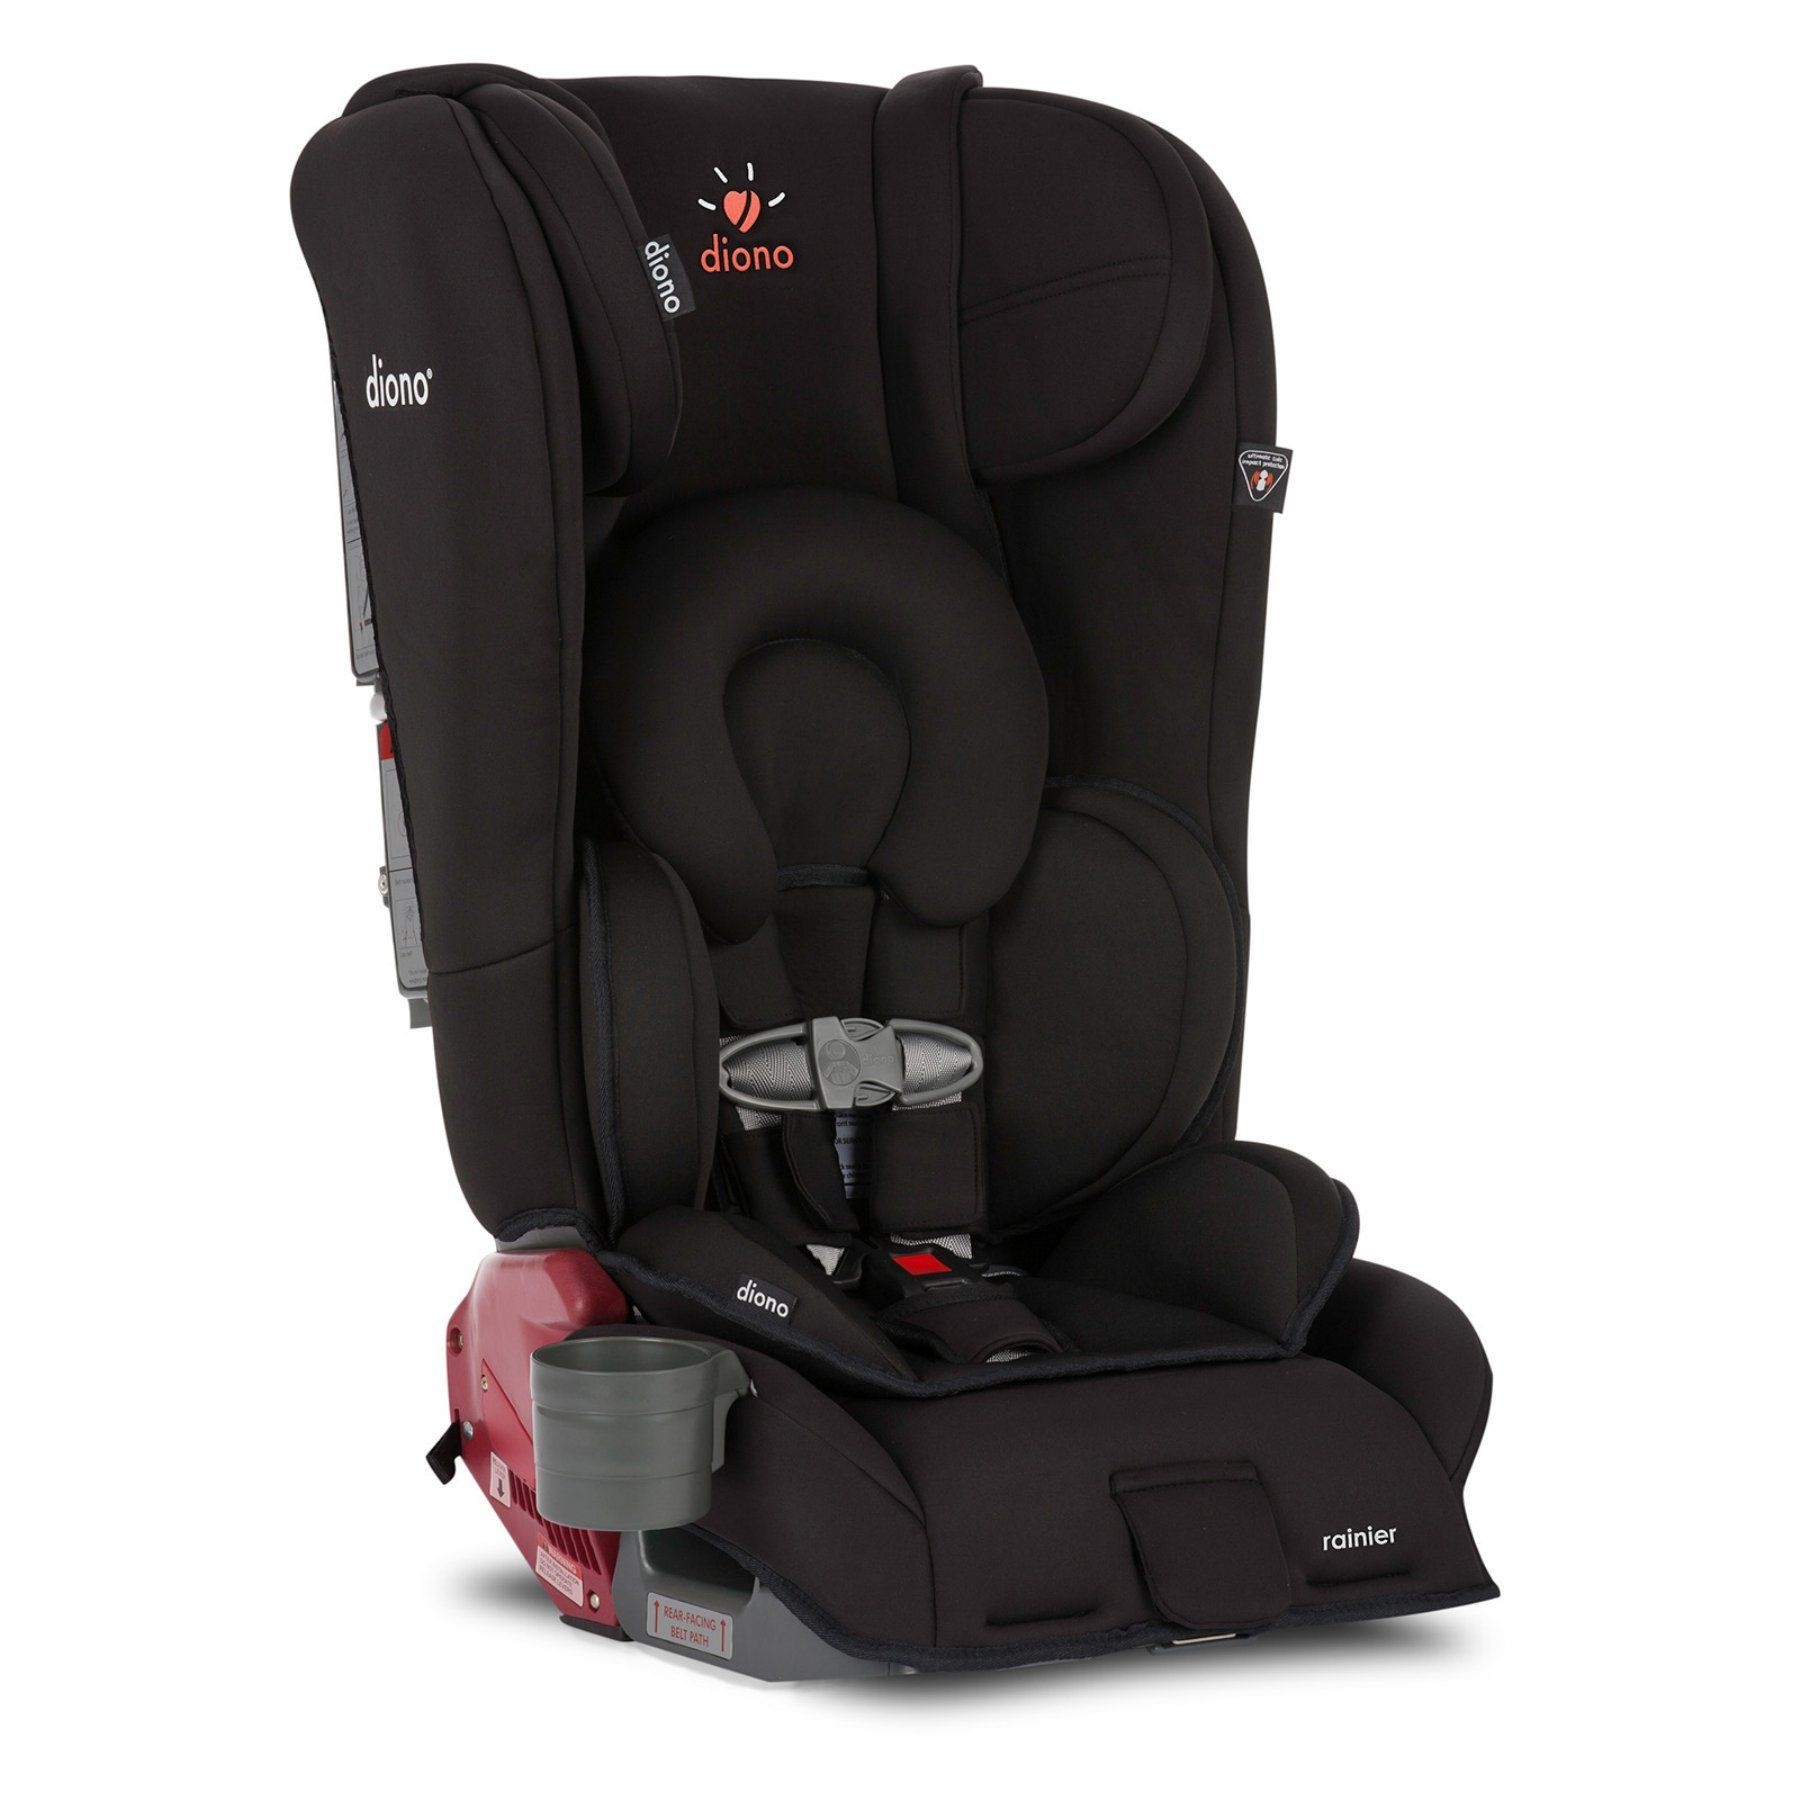 Diono Rainier Convertible Car Seat Midnight 16015